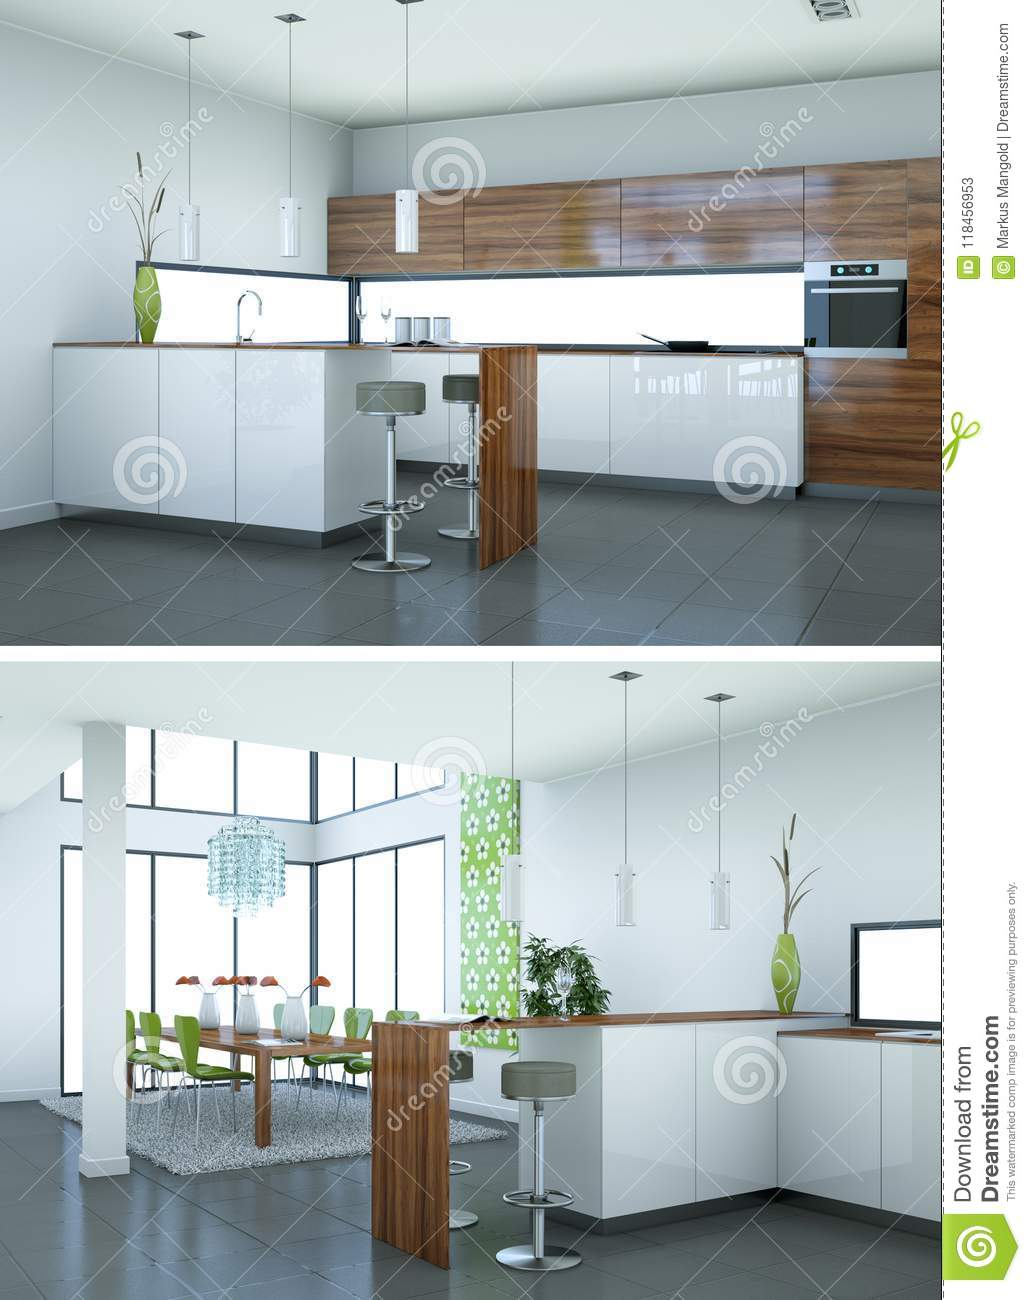 Two Views Of Modern Kitchen Interior Design Stock Image - Image of ...